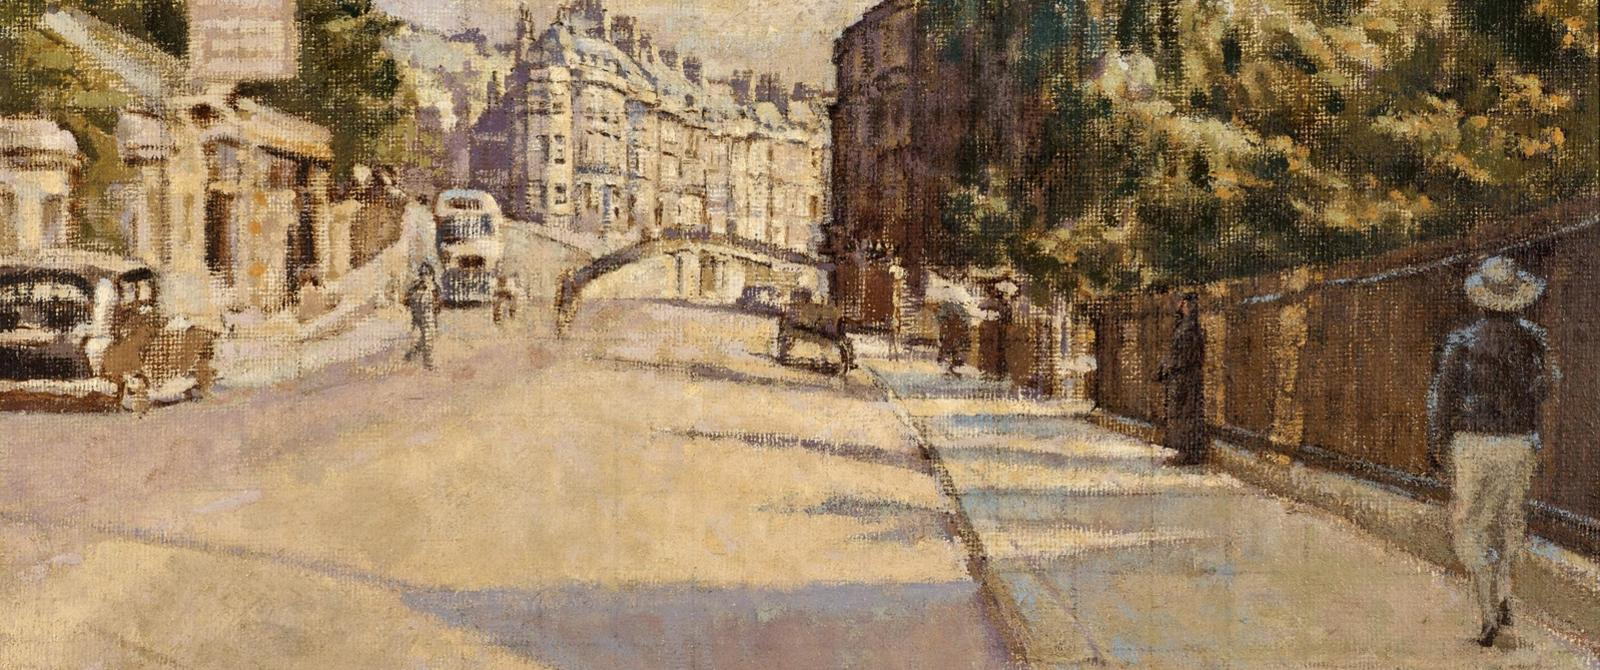 Image: London Street by Walter Sickert